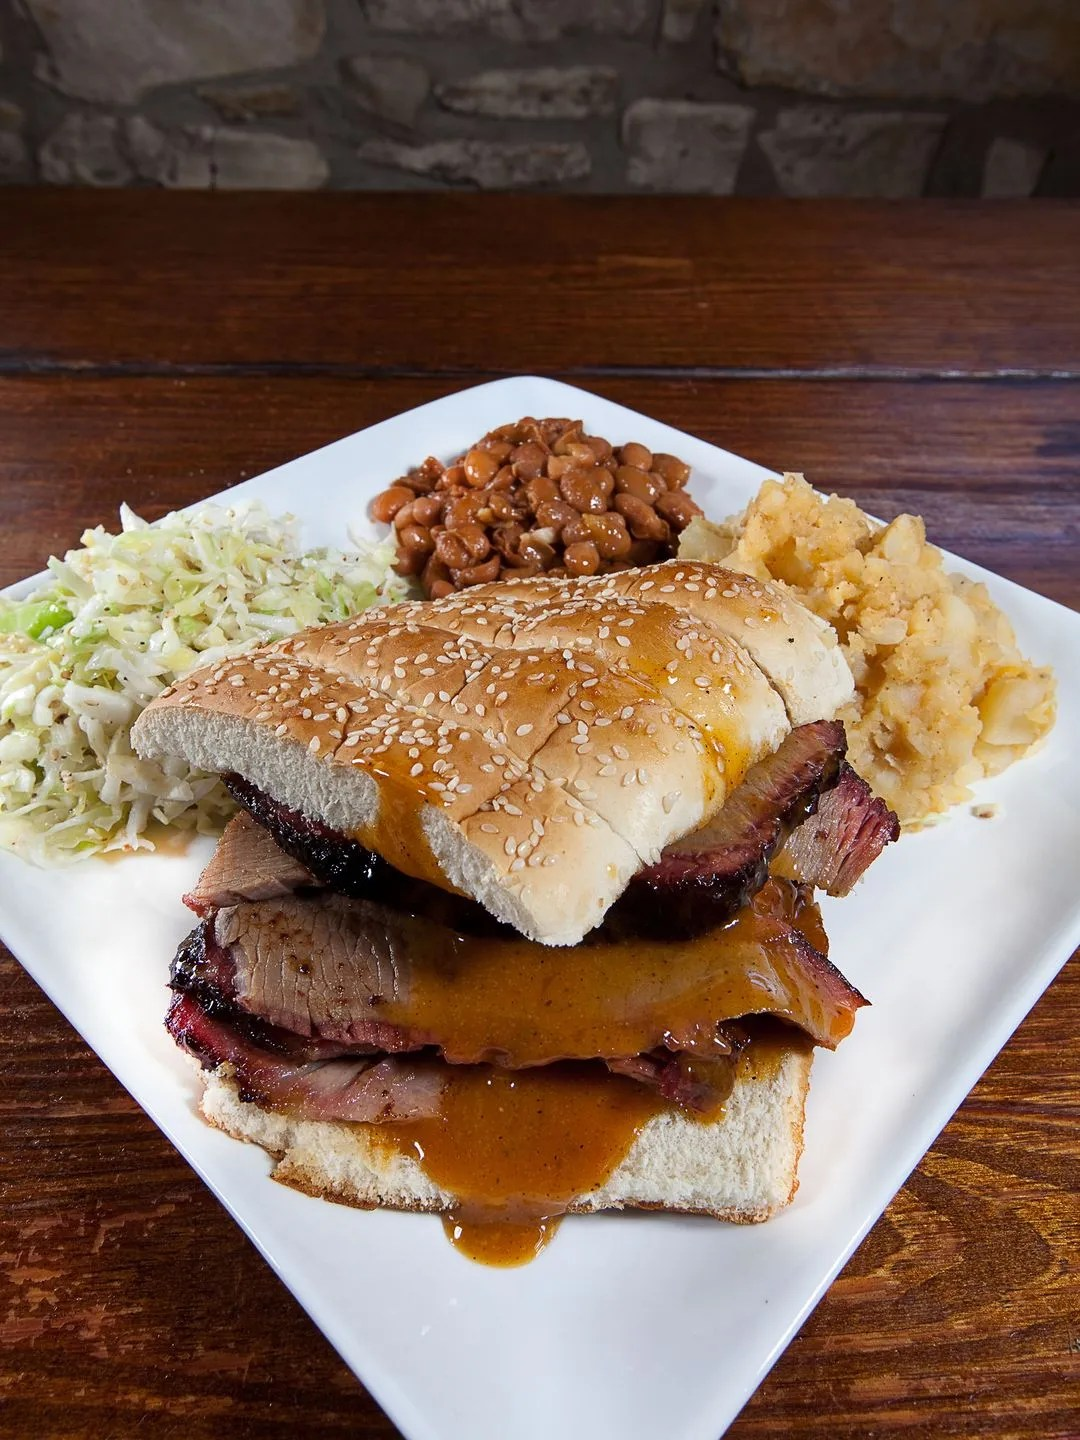 At Austin Bergstrom International Airport, Salt Lick Bar-B-Que sold more than 54.5 tons of brisket in the form of tacos, platters, sandwiches, and whole frozen briskets to-go last year.